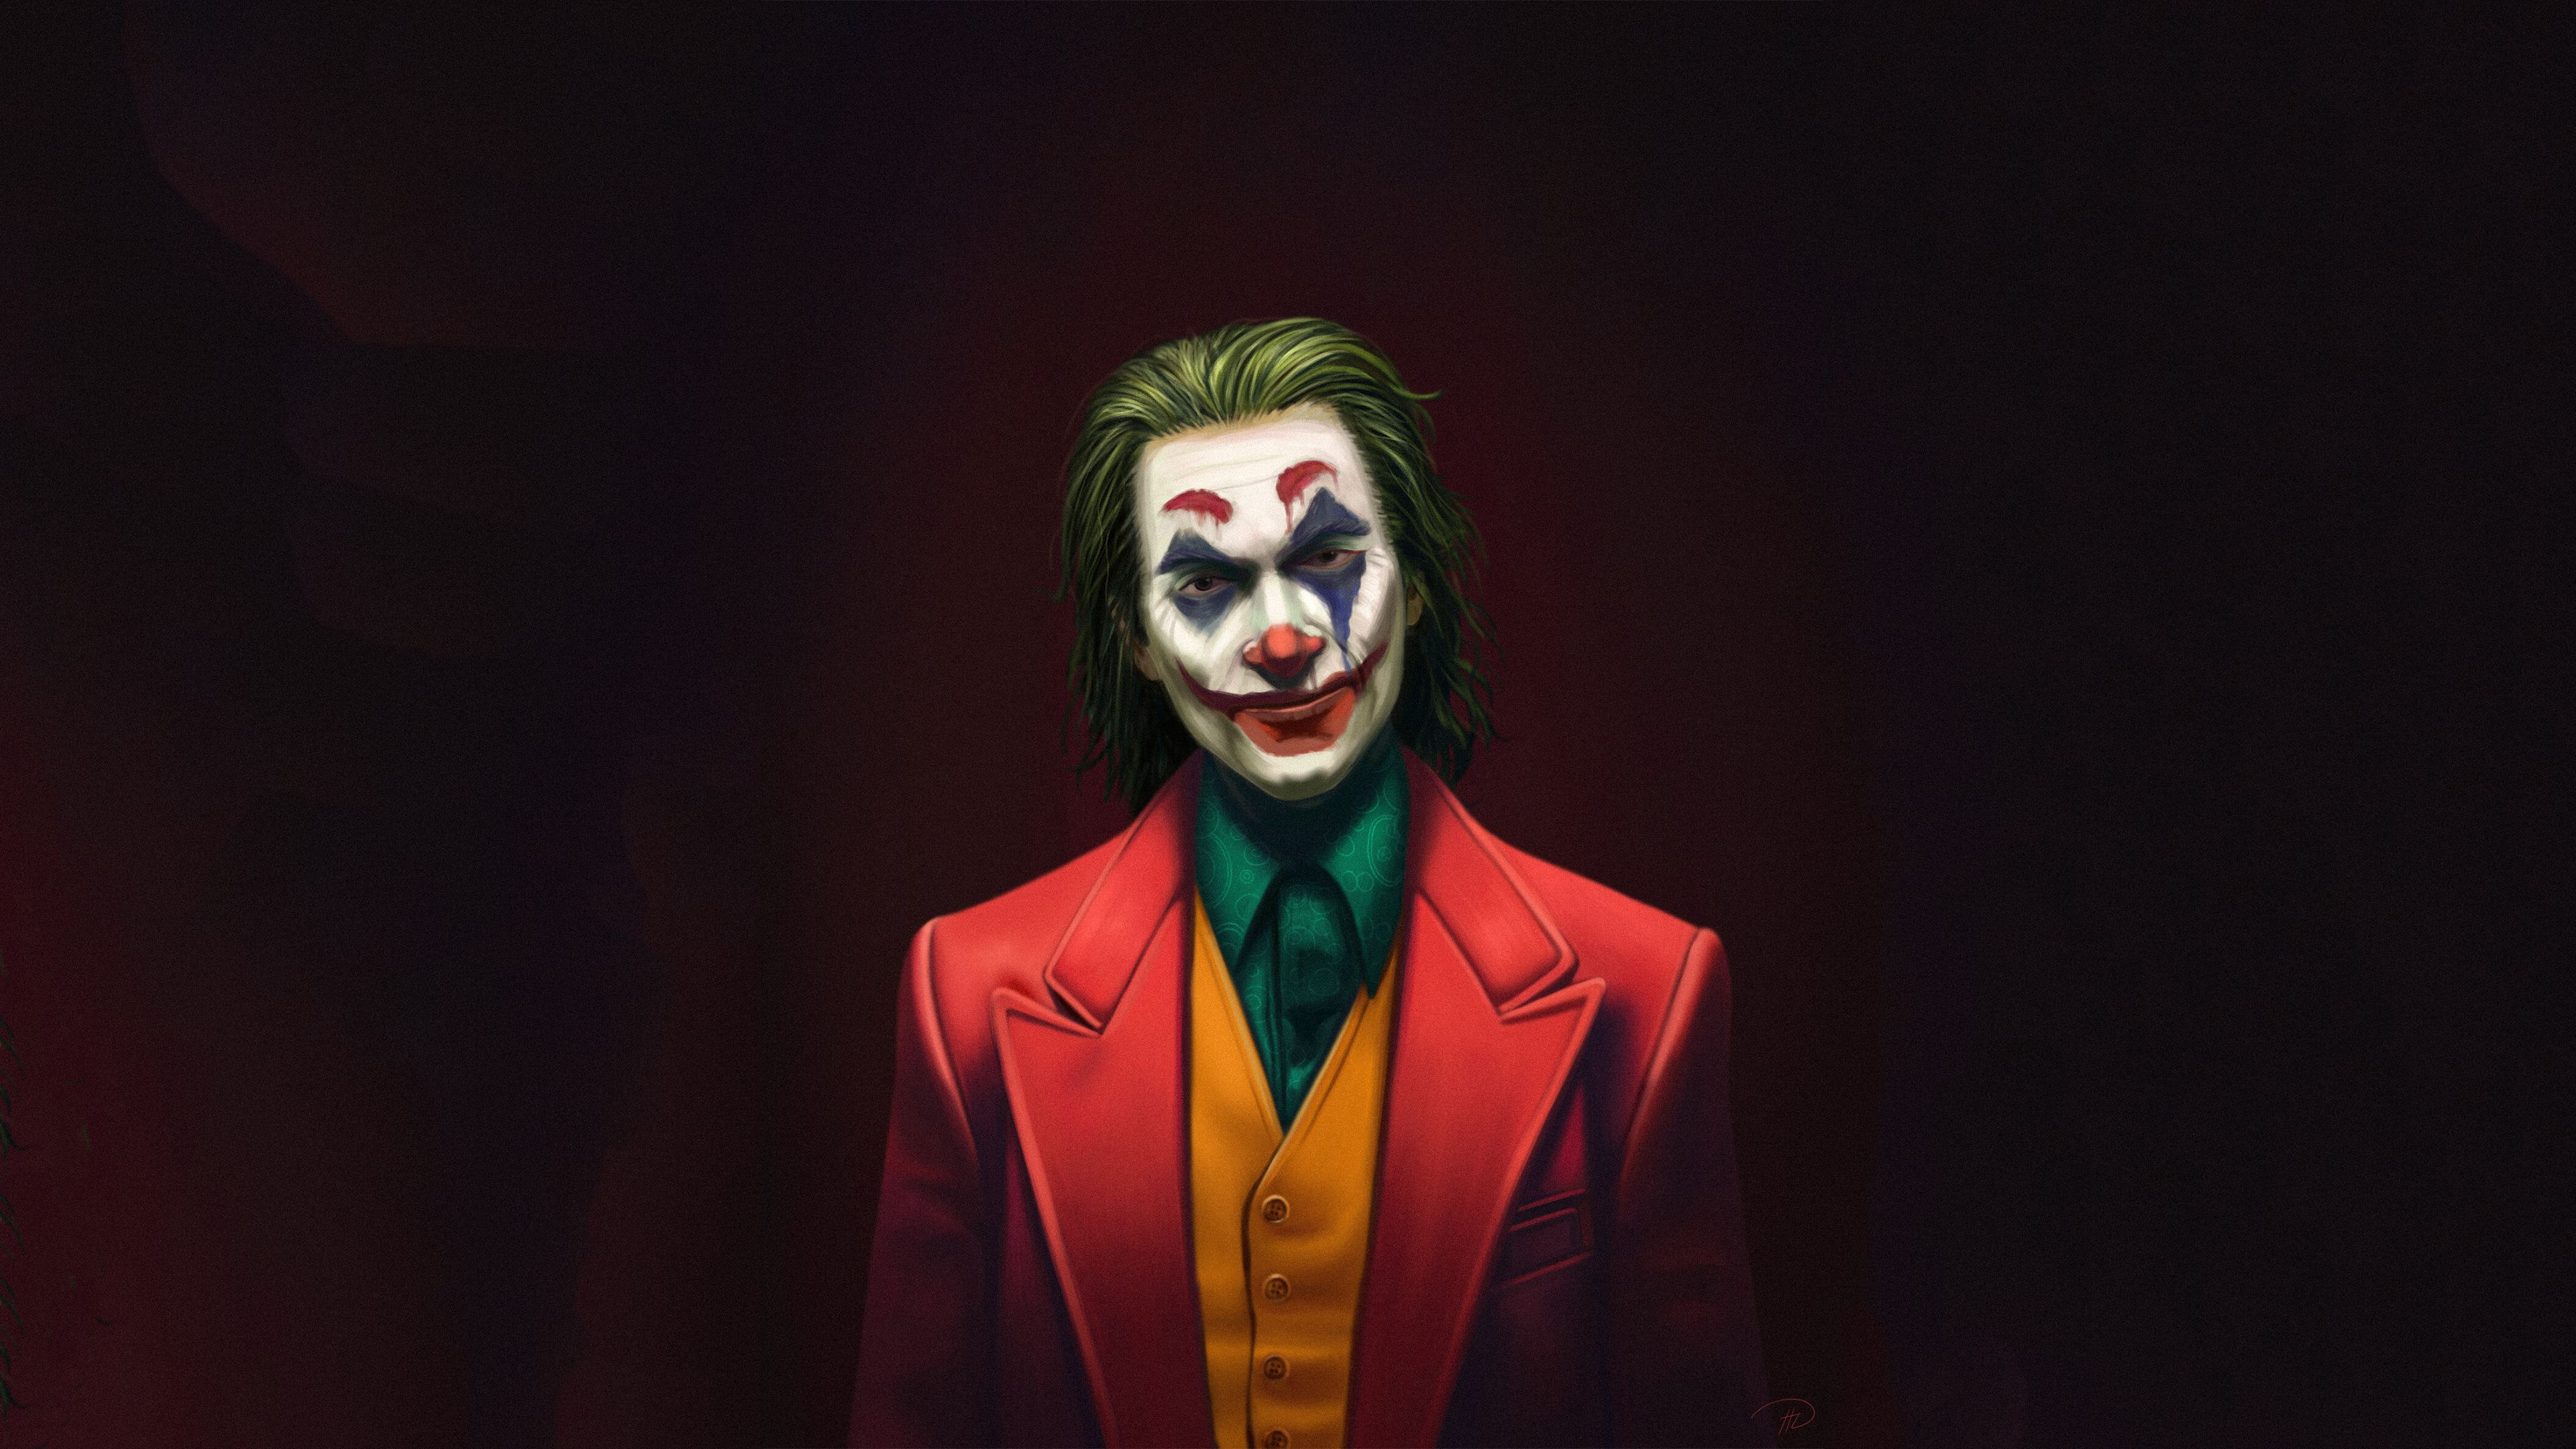 Wallpapers 4k Joker Movie Joaquin Phoenix Art 4k